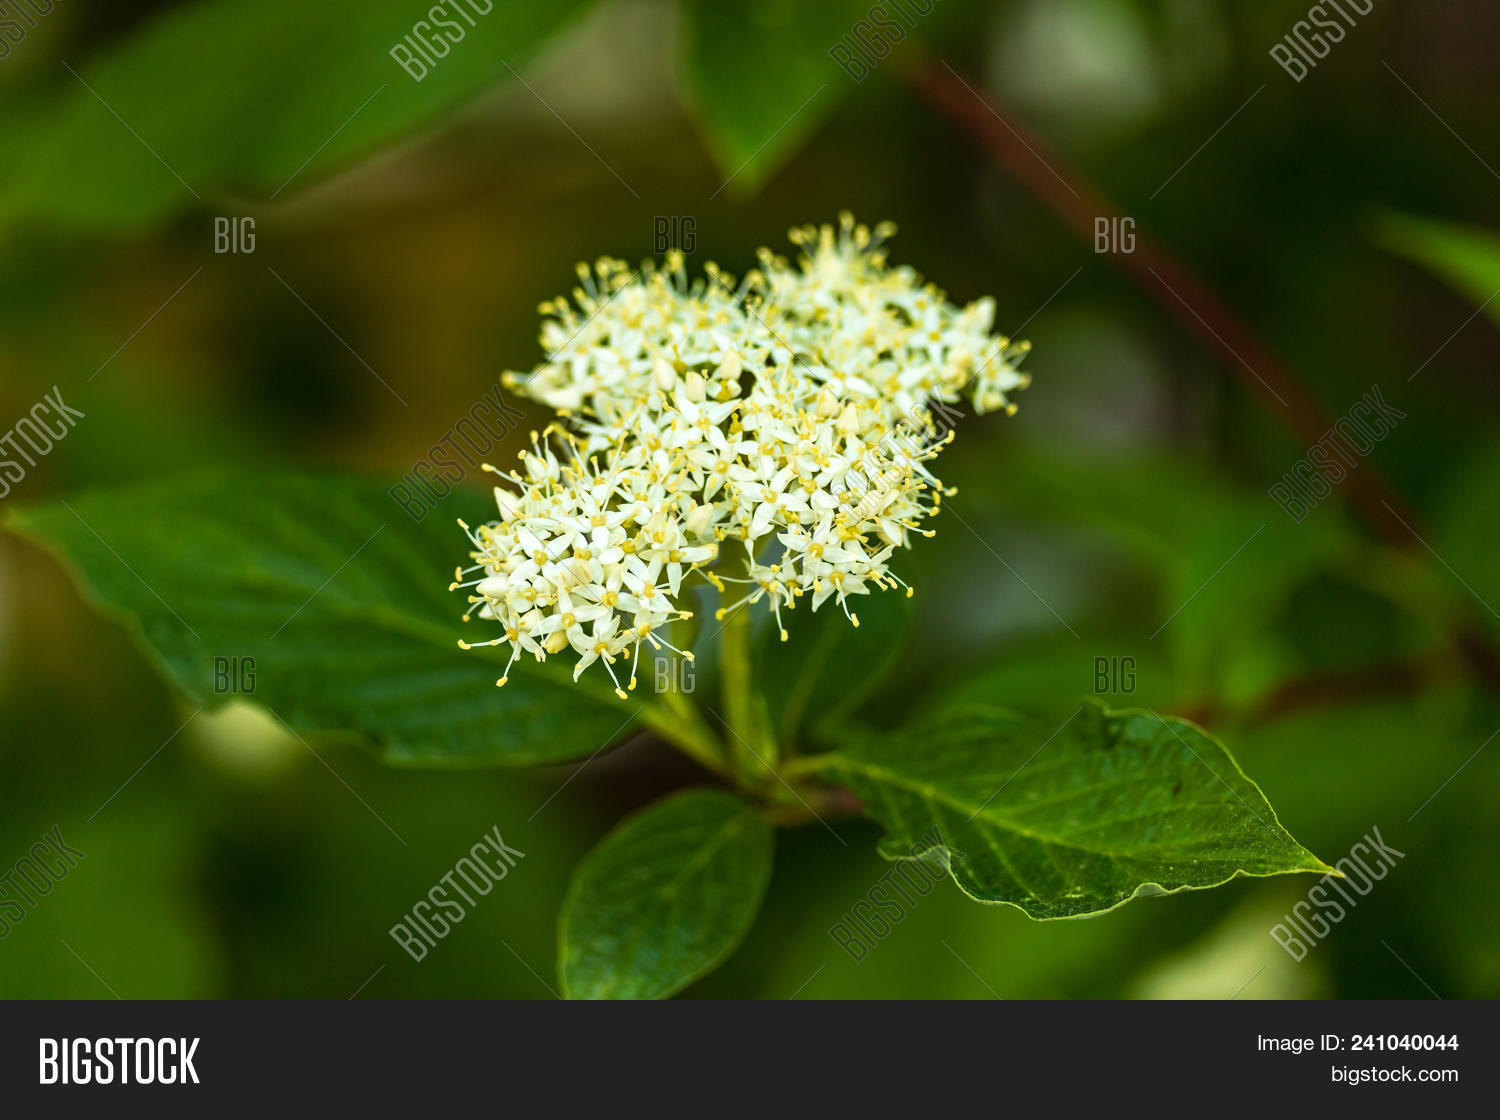 Small yellow white flower clusters image photo bigstock a small yellow and white flower clusters blooming on a shrub mightylinksfo